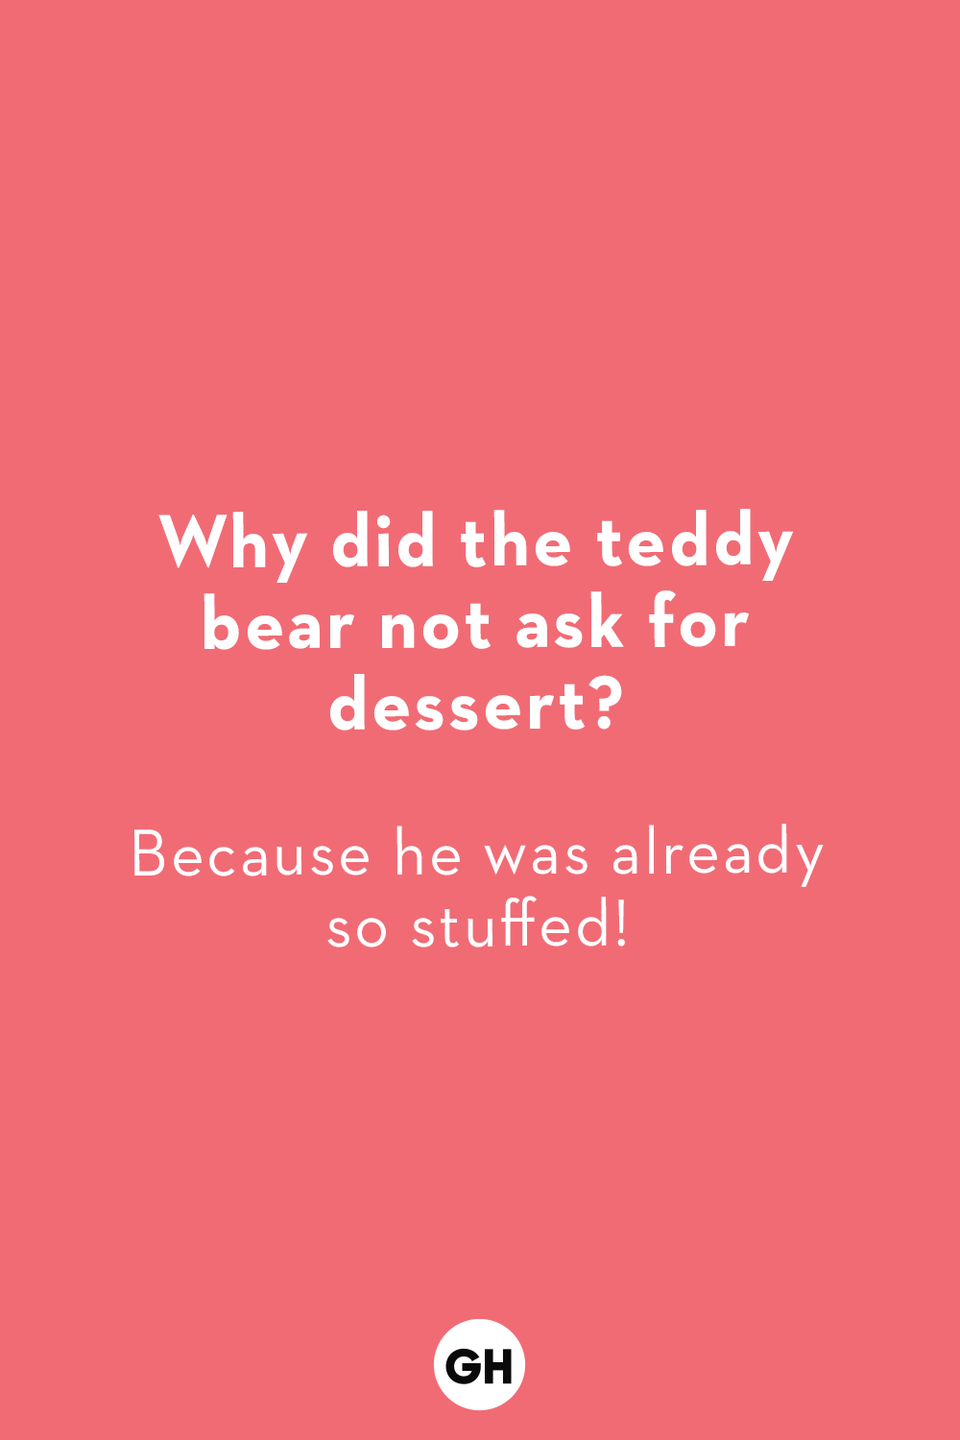 <p>Because he was already so stuffed!</p>